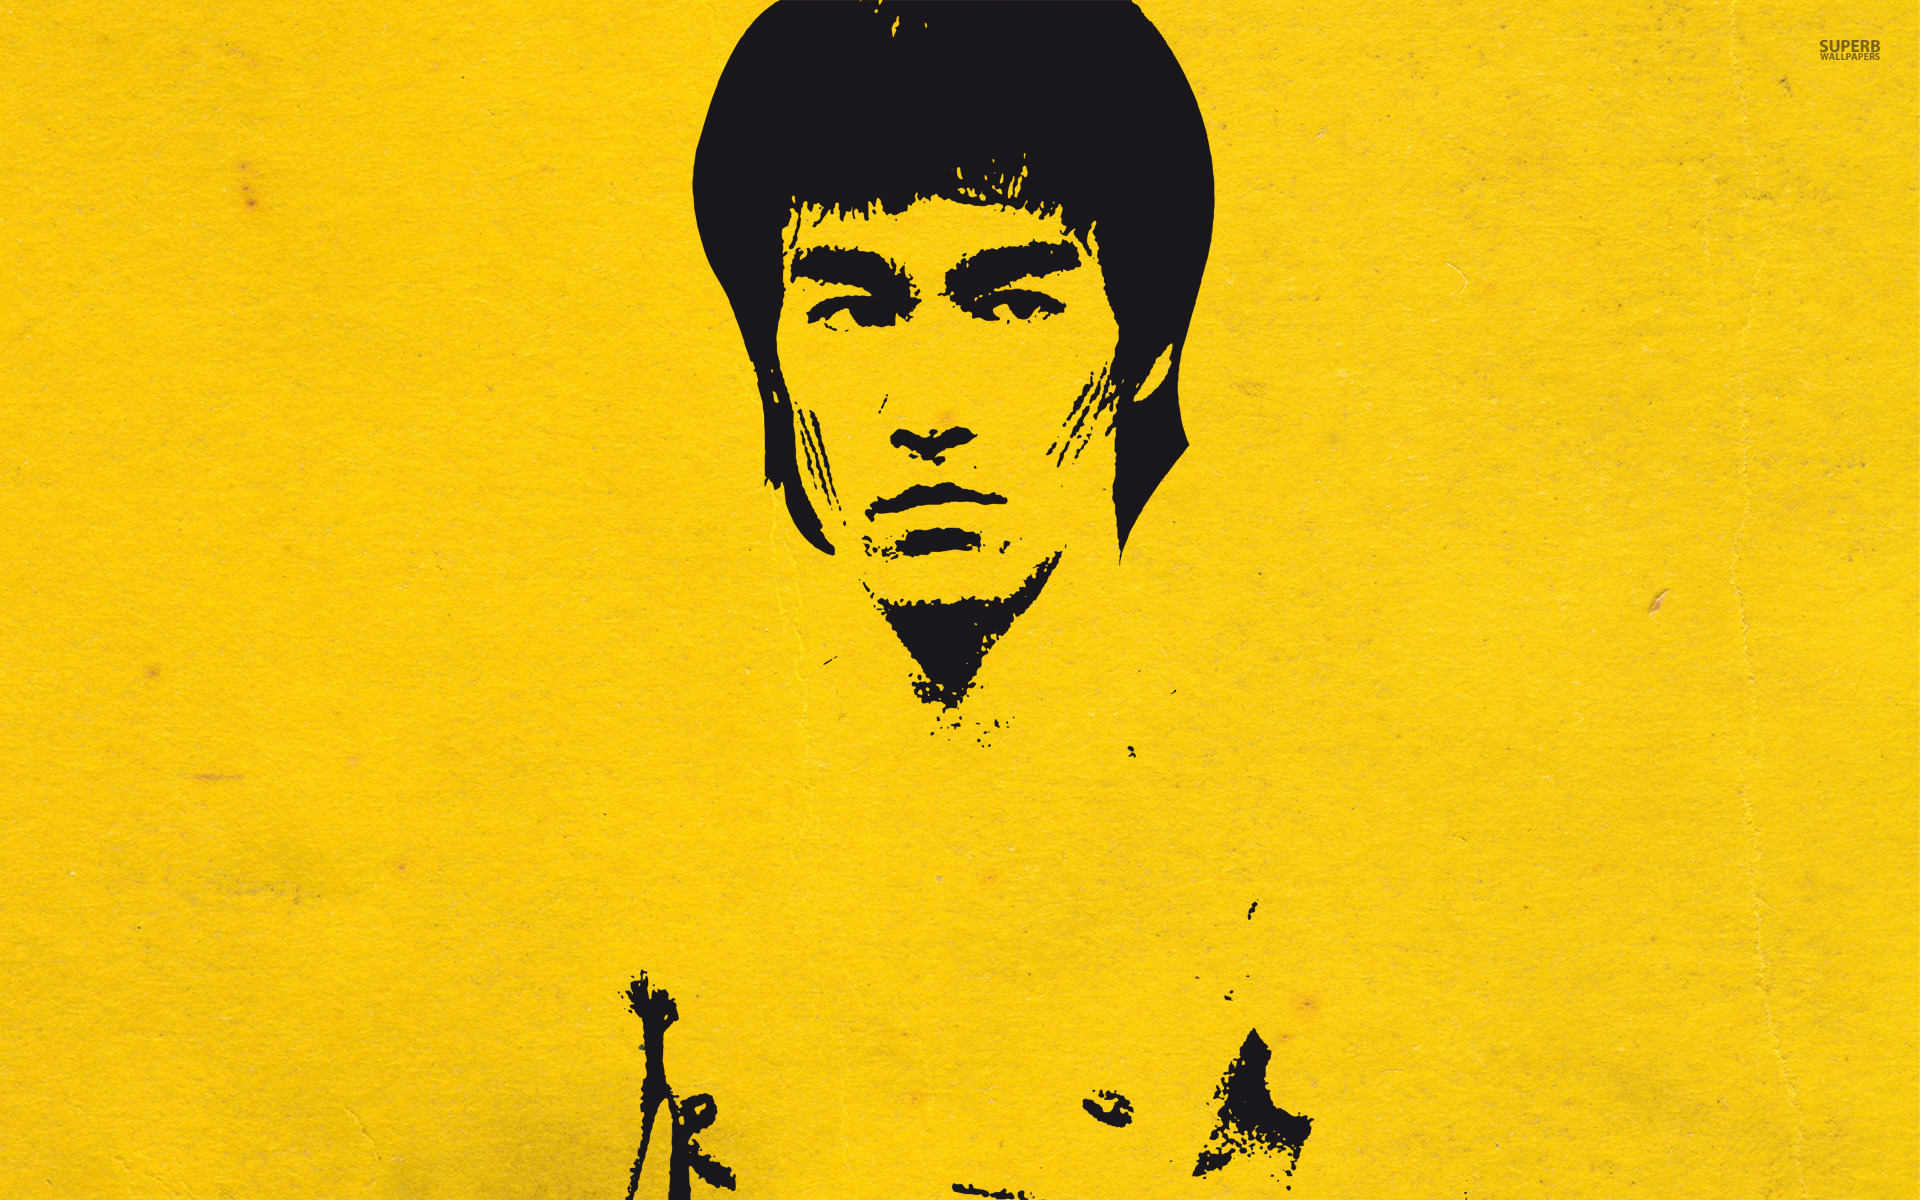 Bruce Lee Image download best on digitalimagemakerworldcom 1920x1200